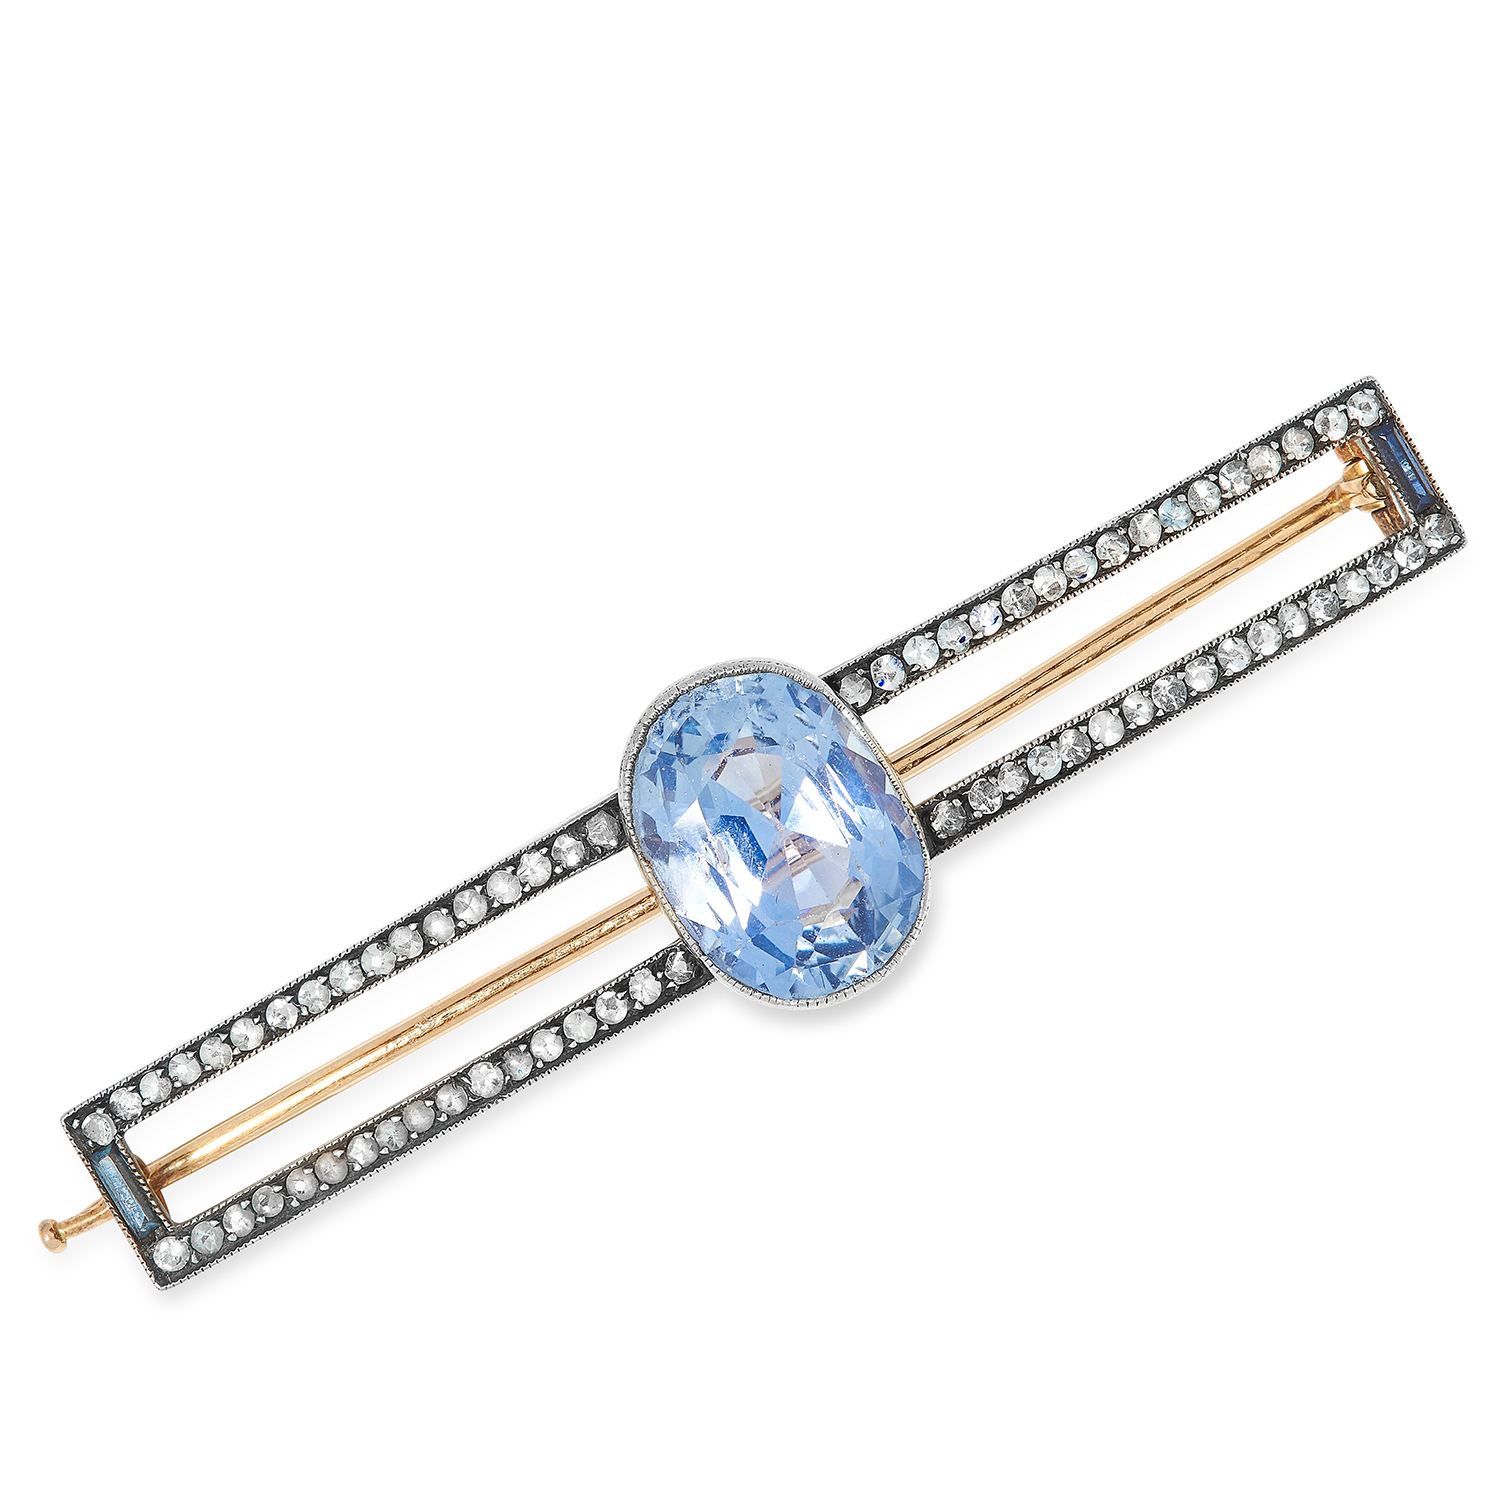 Los 12 - ANTIQUE RUSSIAN SAPPHIRE AND DIAMOND BROOCH CIRCA 1910 set with an oval cut sapphire of 8.05 carats,